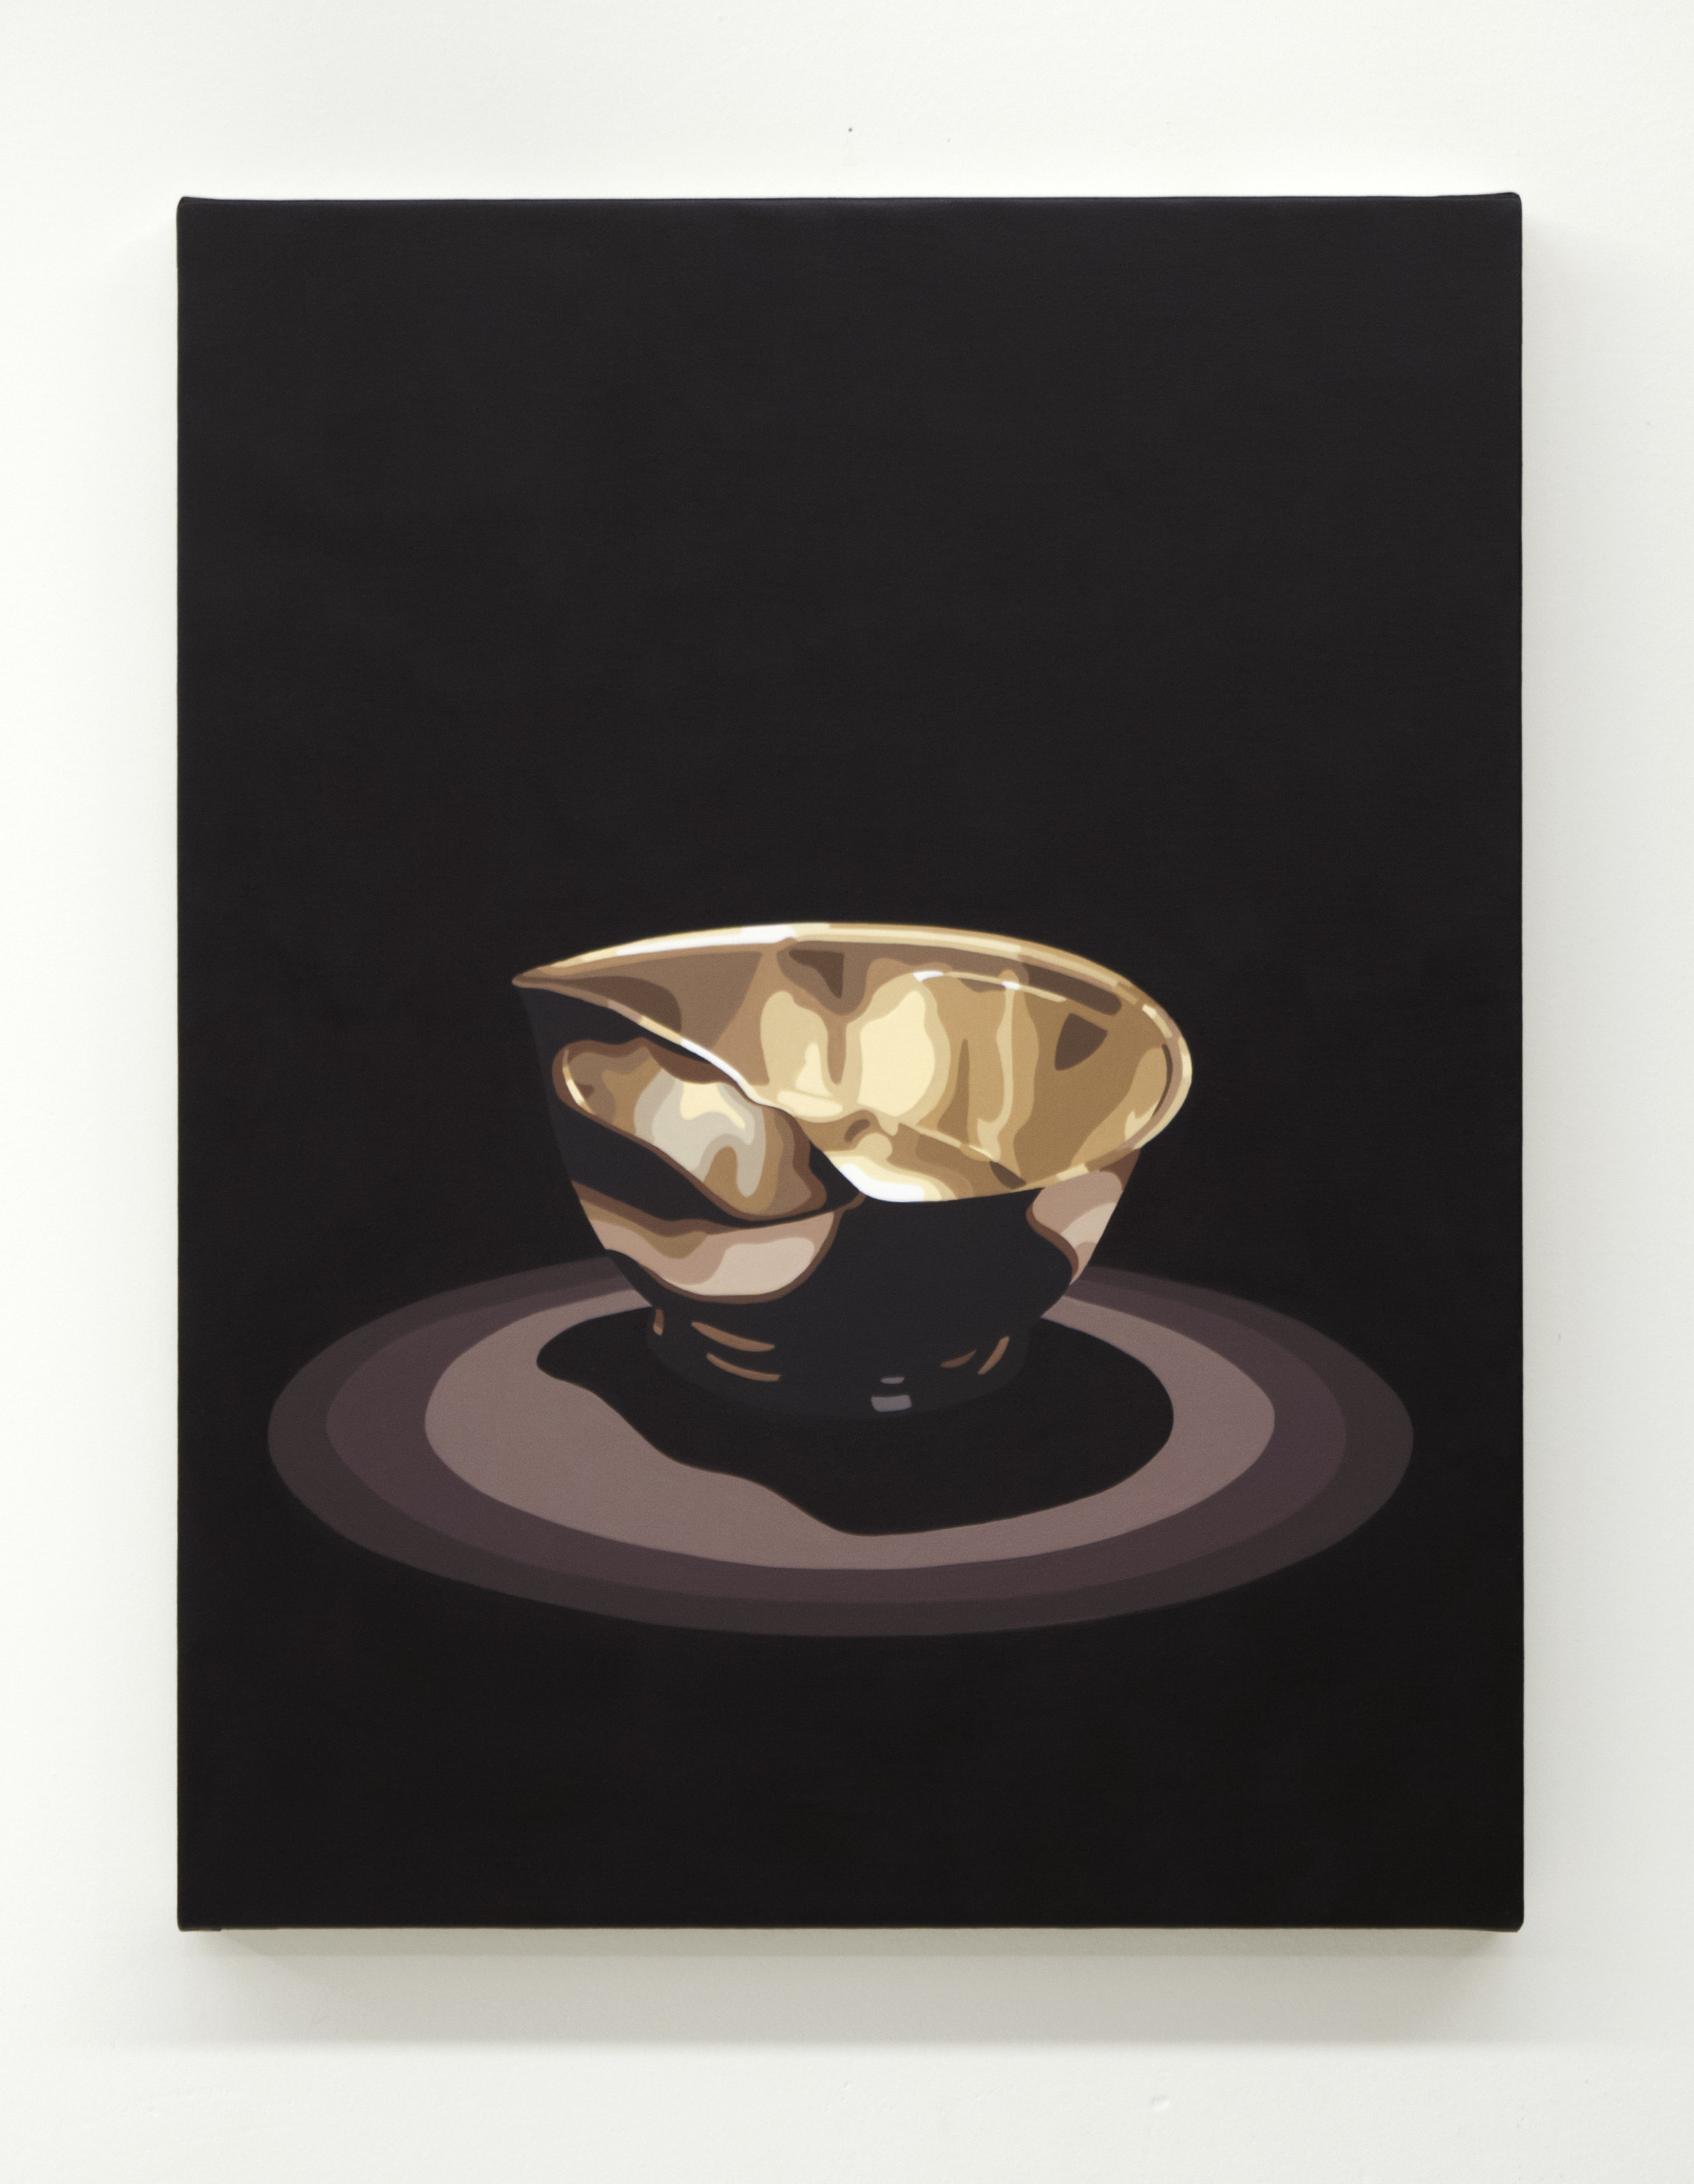 "Relic (bowl)  2019, 18"" x 14"", oil on linen, (AR component below) Duration 00:01:28"